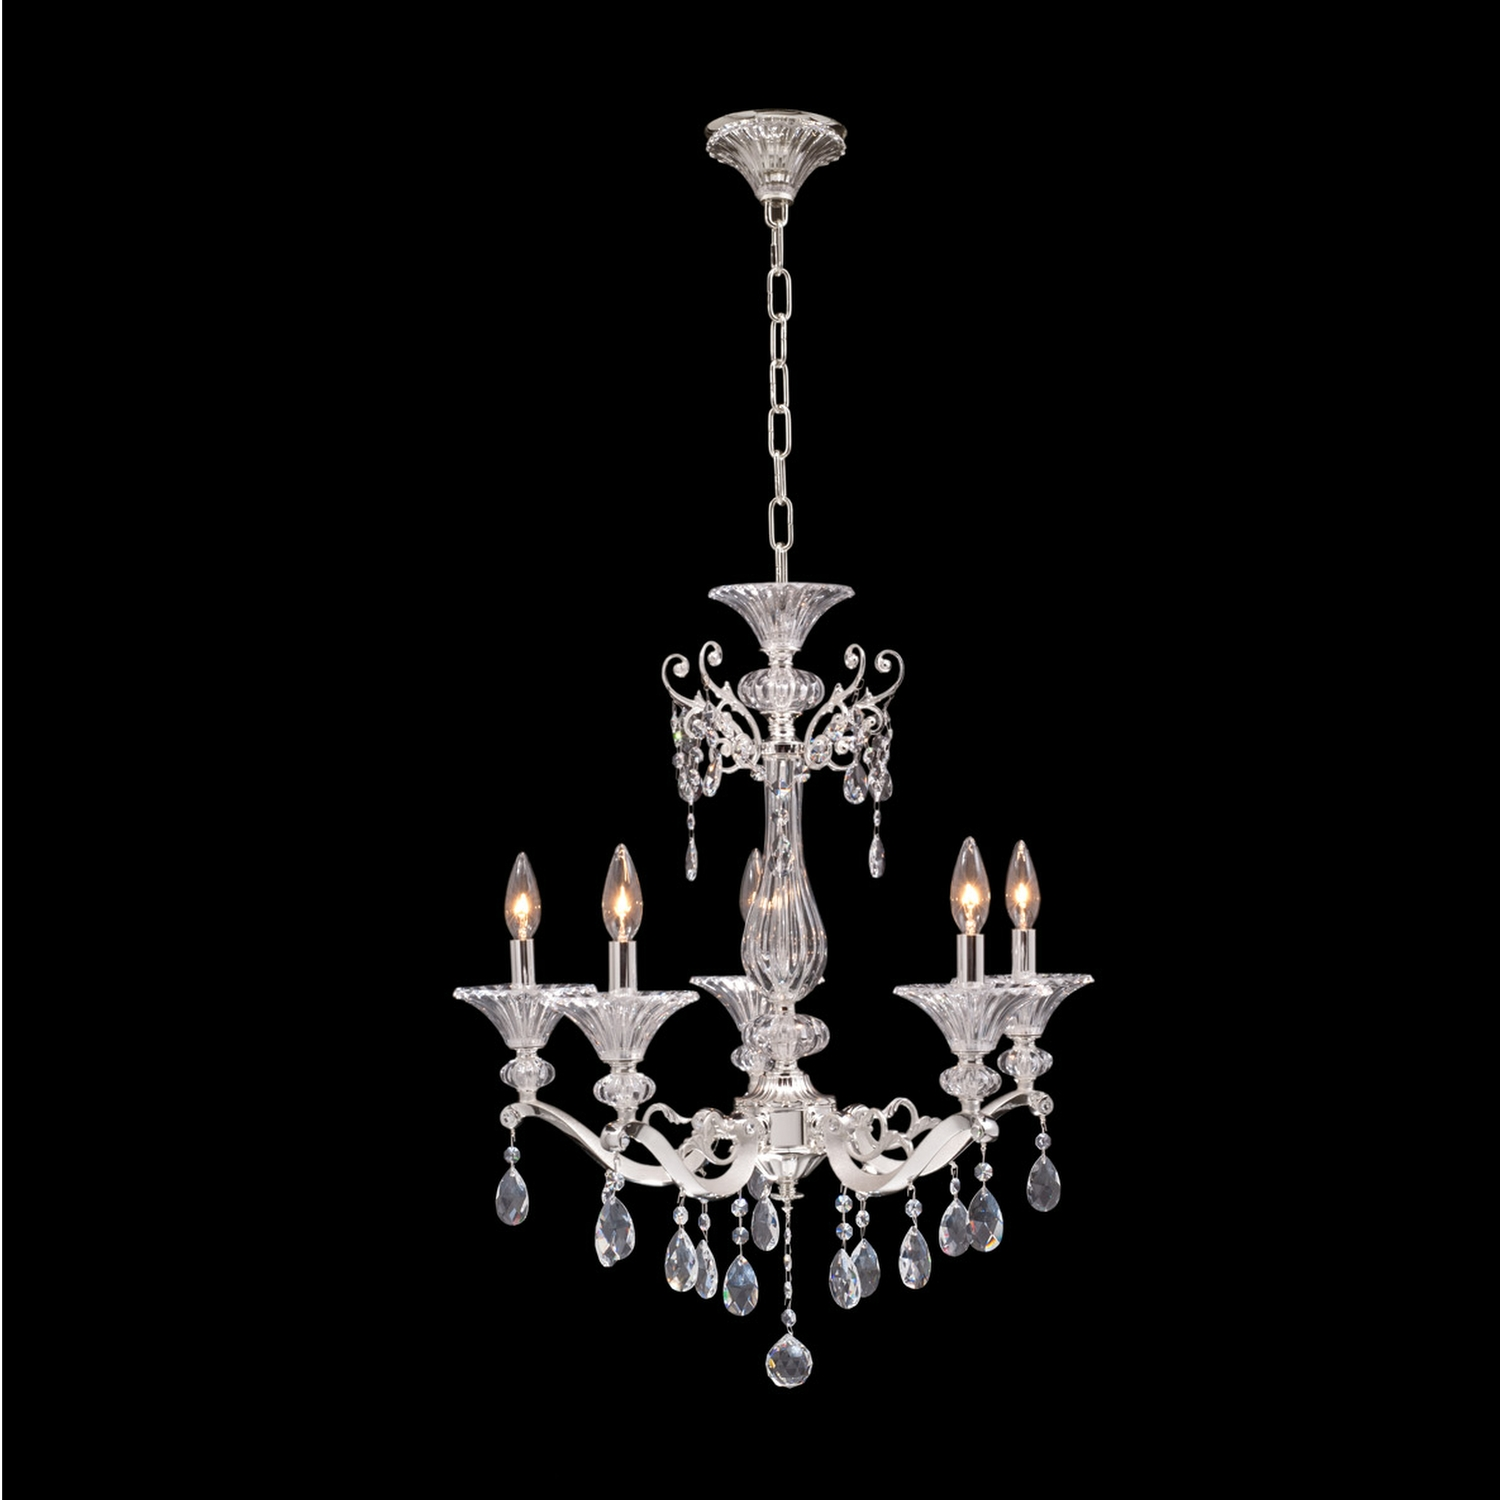 Vasari 5 Light Chandelier